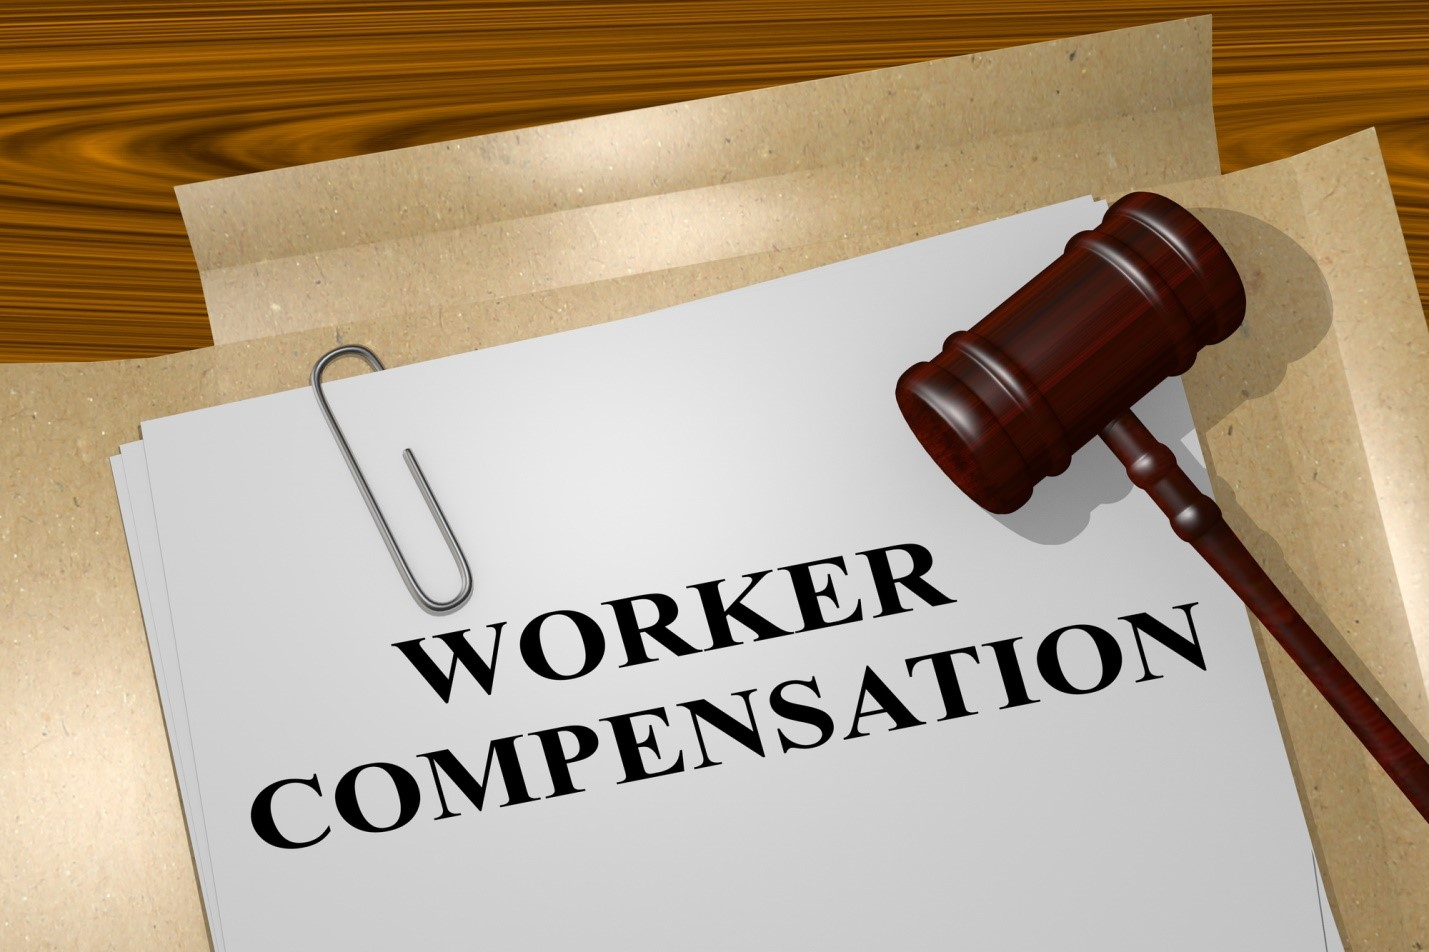 Is Workman's Compensation Insurance Required for Businesses? 1